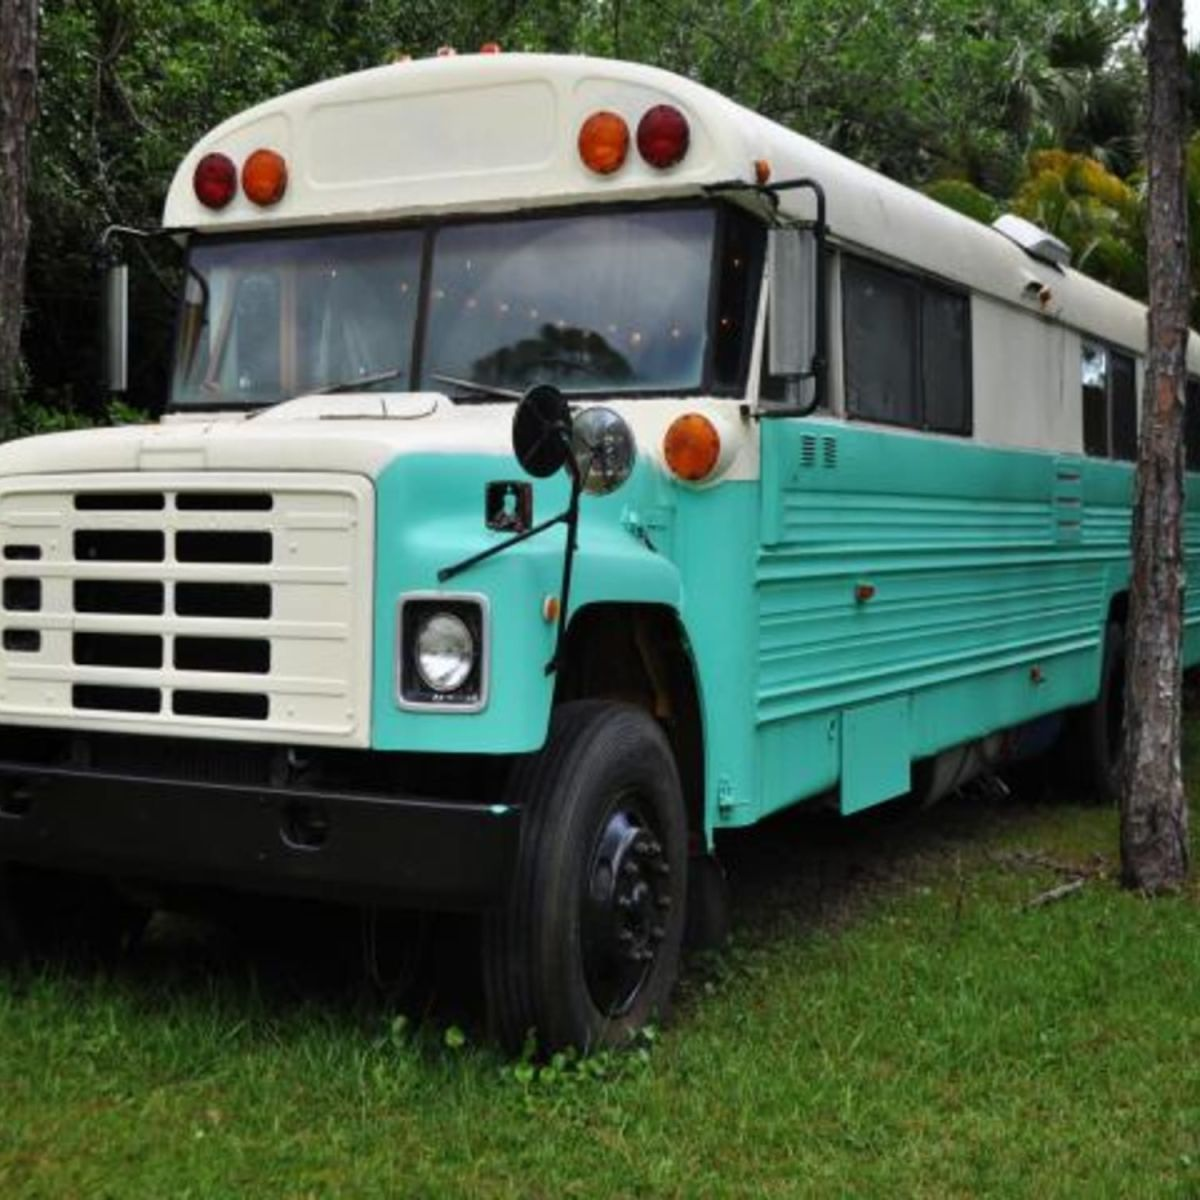 1981 Converted School Bus For Sale - Tiny House for Sale in Okeechobee,  Florida - Tiny House Listings